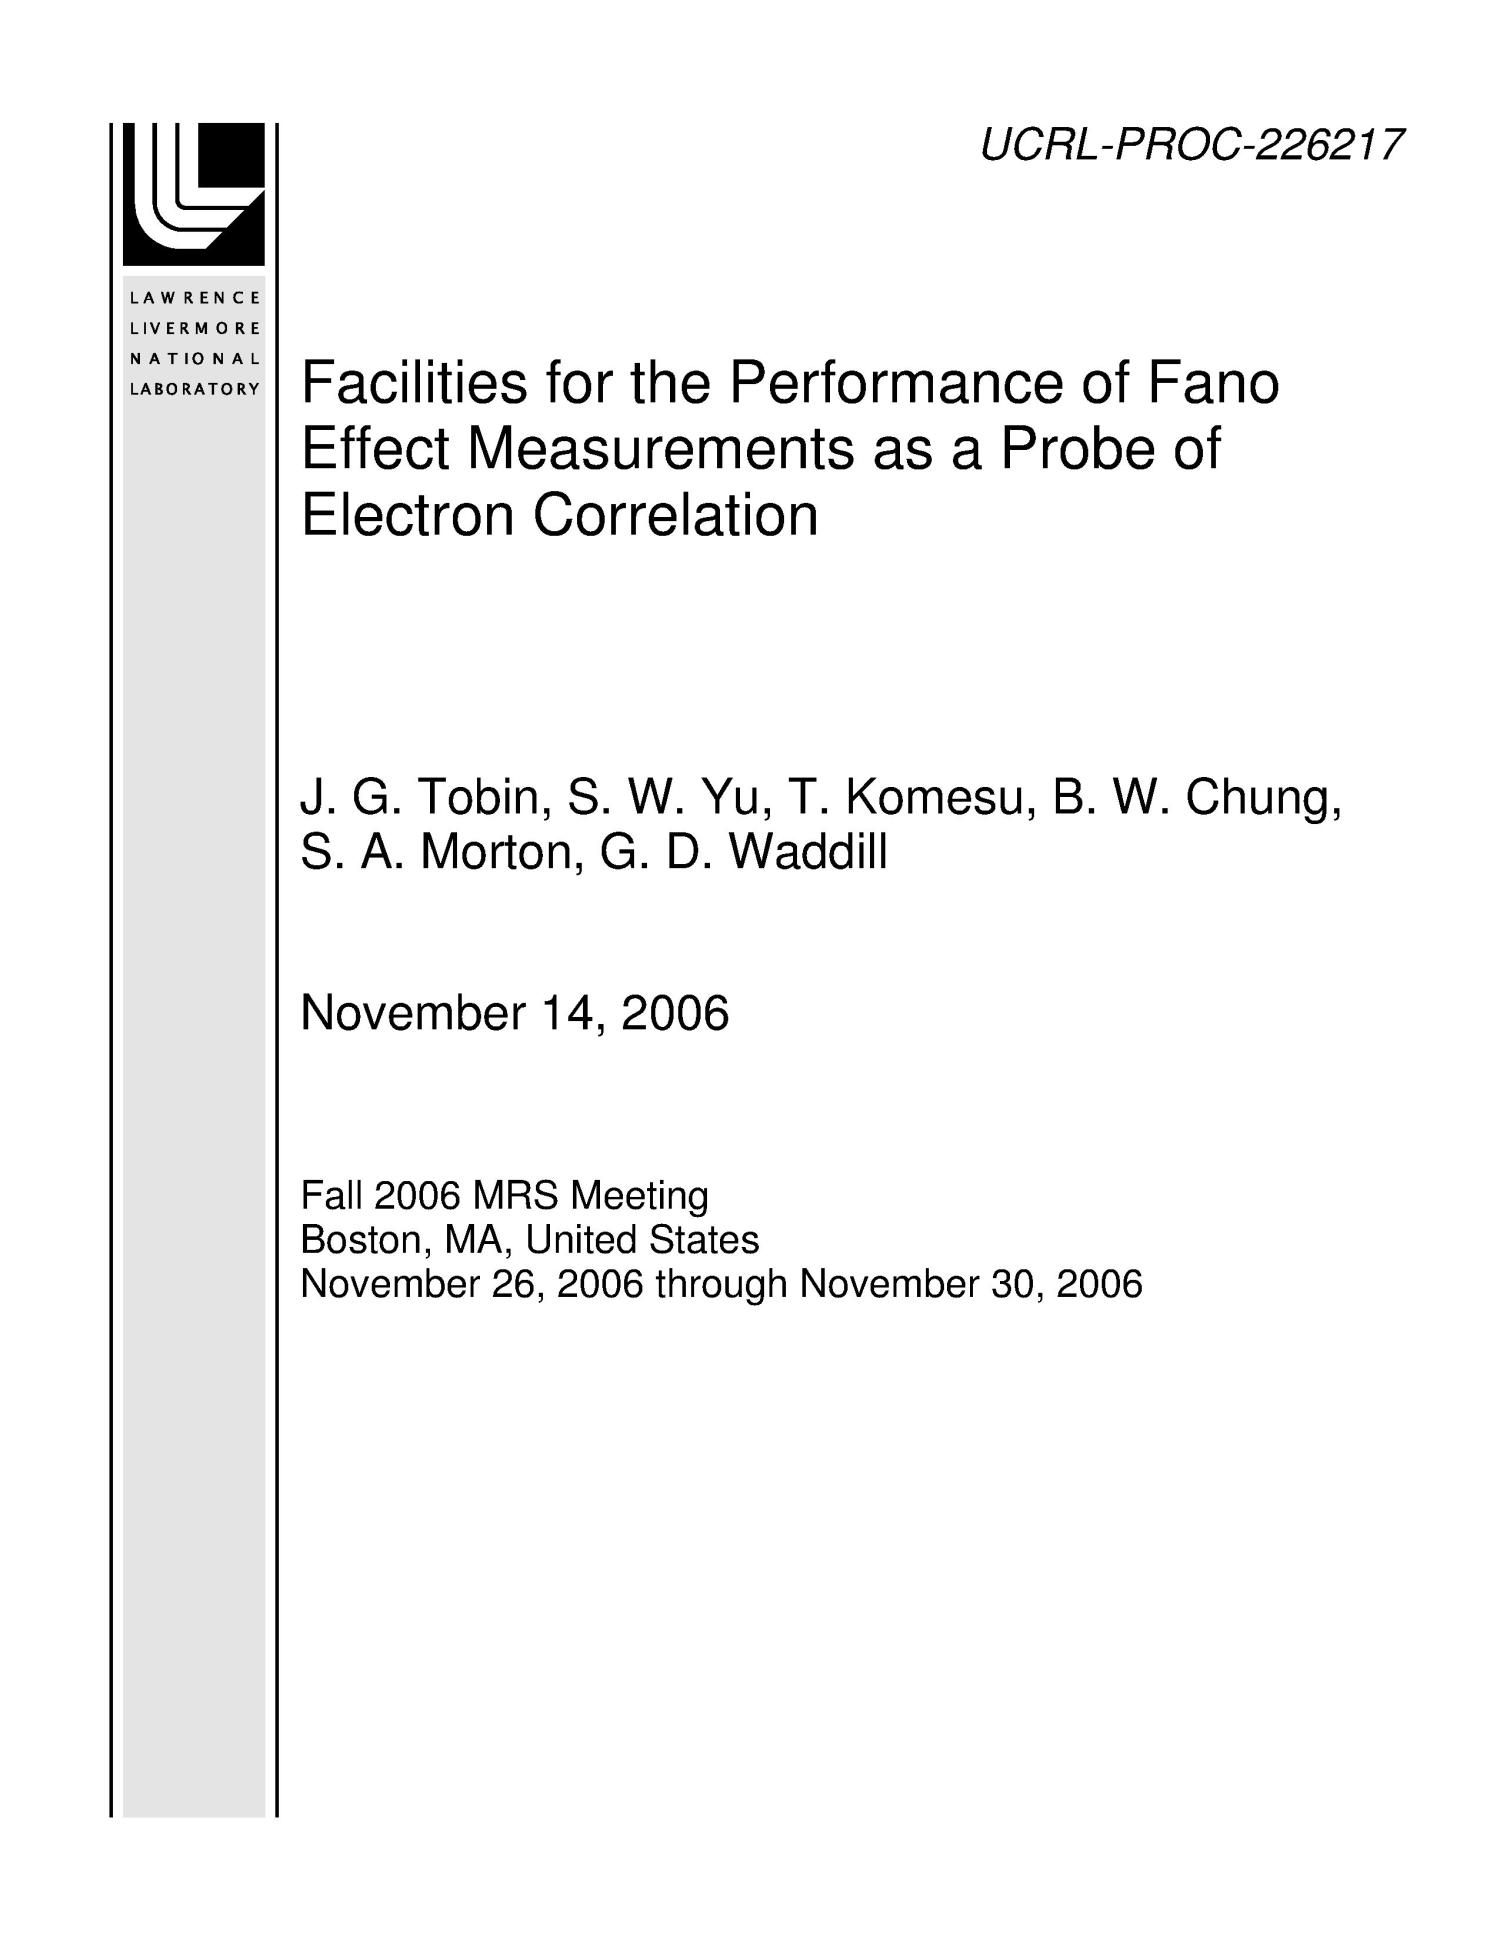 Facilities for the Performance of Fano Effect Measurements as a Probe of Electron Correlation                                                                                                      [Sequence #]: 1 of 7